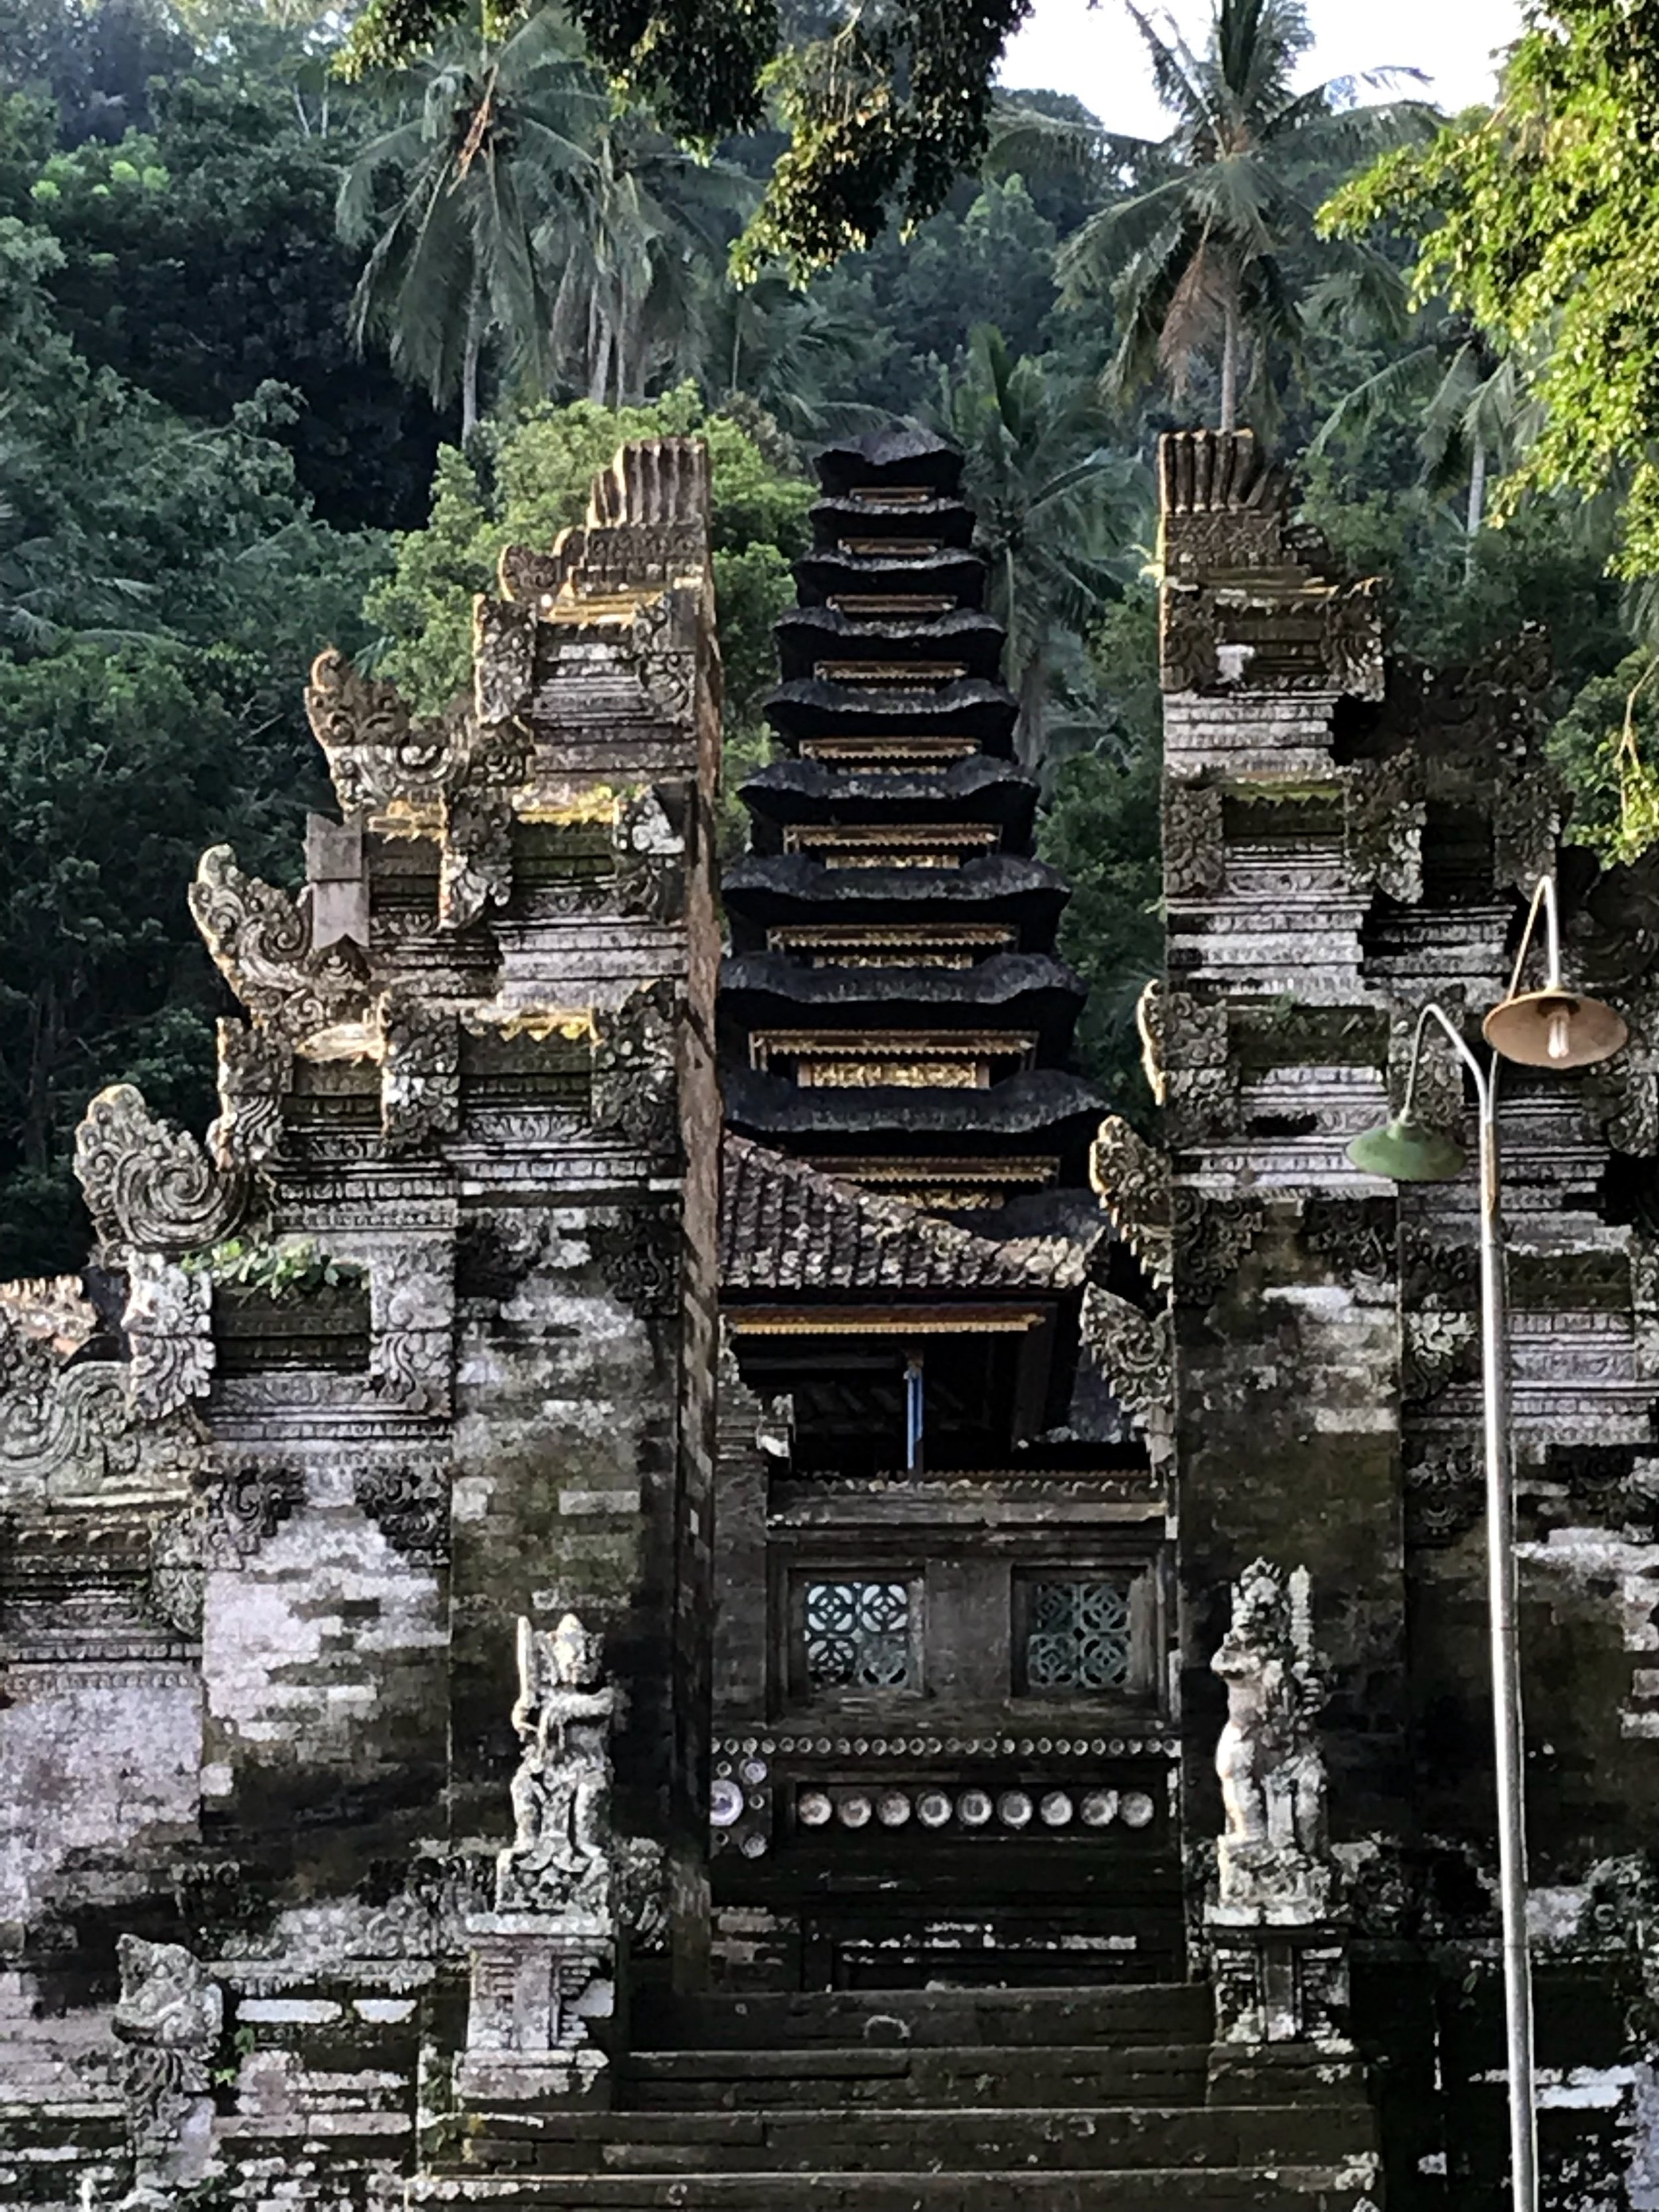 Candi bentars are, not surprisingly, also called split gates